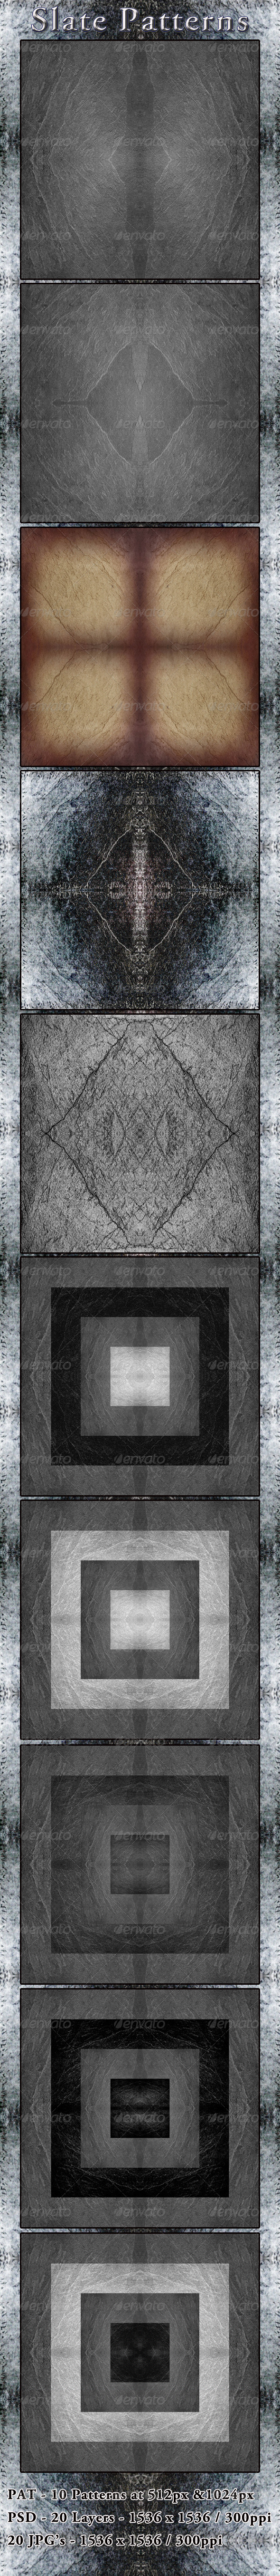 GraphicRiver 10 Slate Patterns 4515595